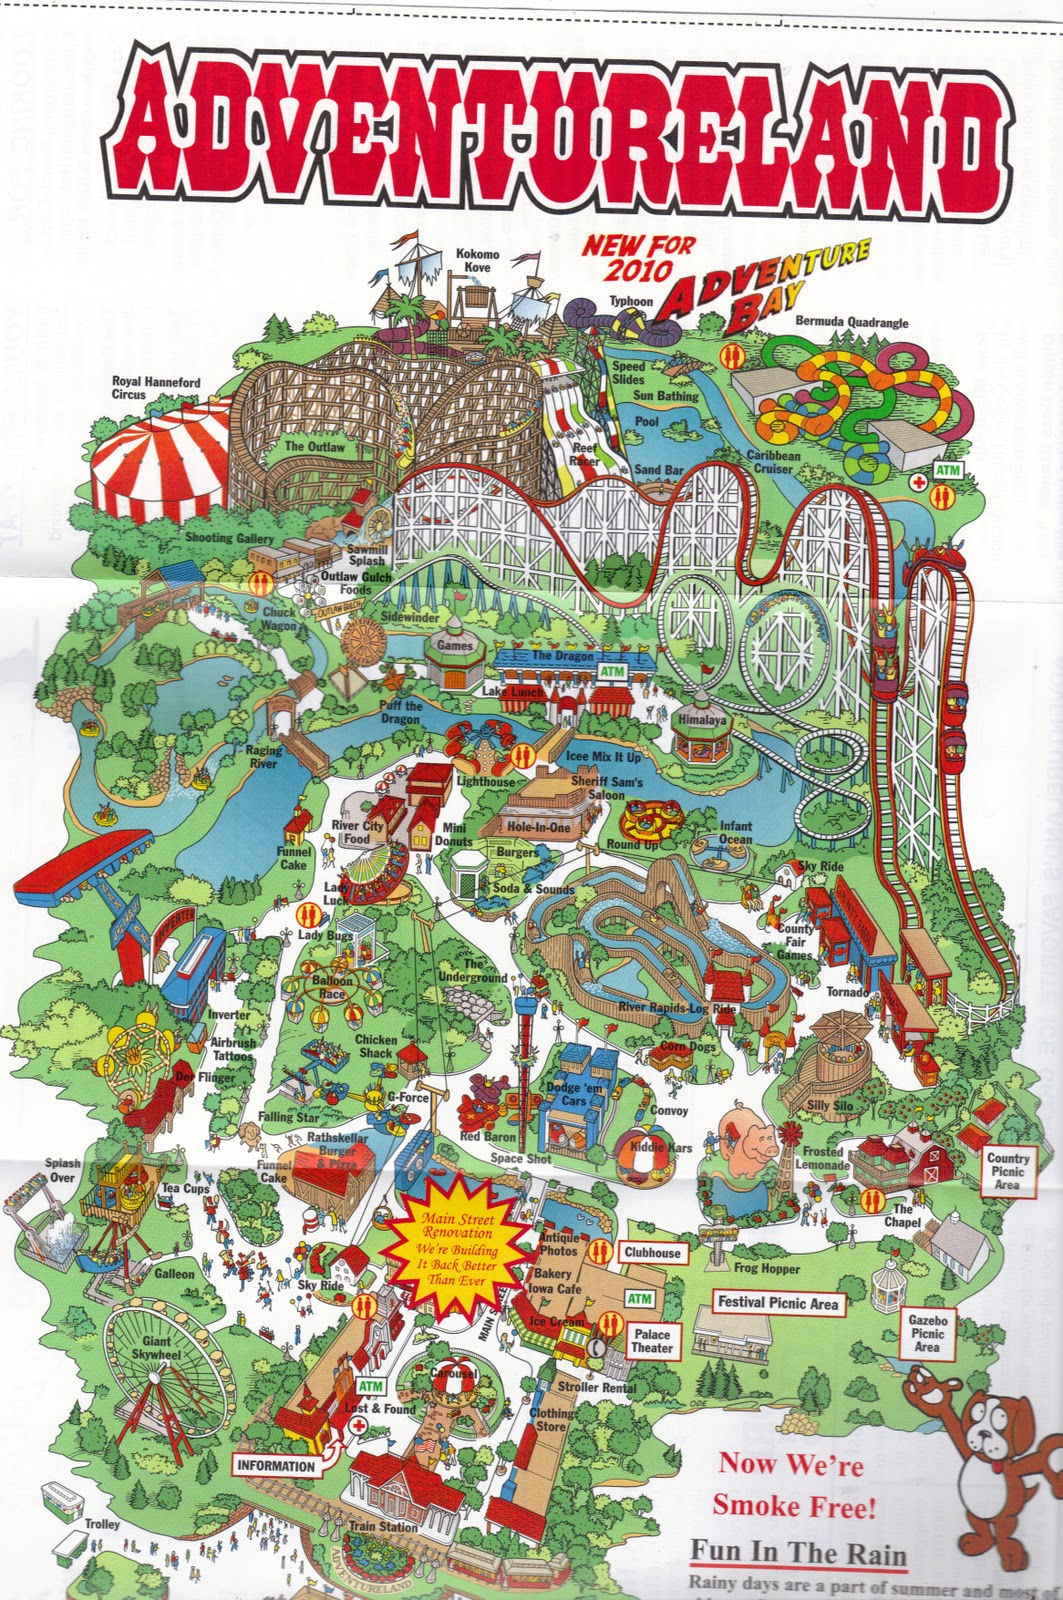 disney fort wilderness map with Our Day At Adventureland In Des Moines on Wisconsin Dells Map furthermore Disneys Fort Wilderness Resort Refurbished Cabin Review in addition 5021170353 likewise Searching for the perfect family tent furthermore Twin Rivers Trailer Court Park.